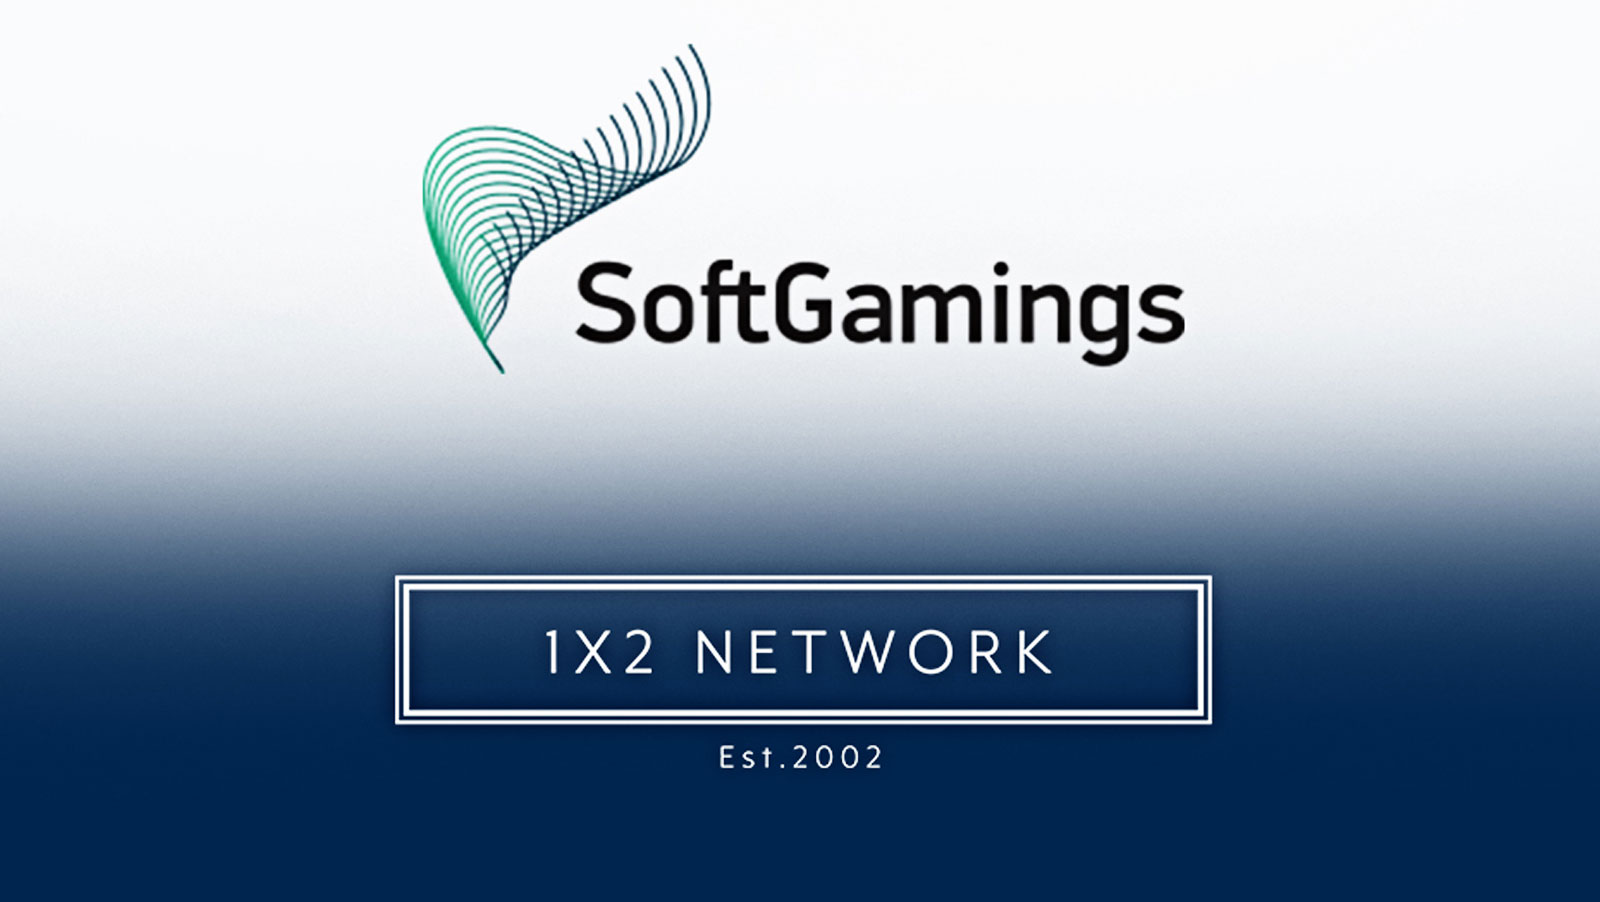 Softgamings to launch 1x2 network content